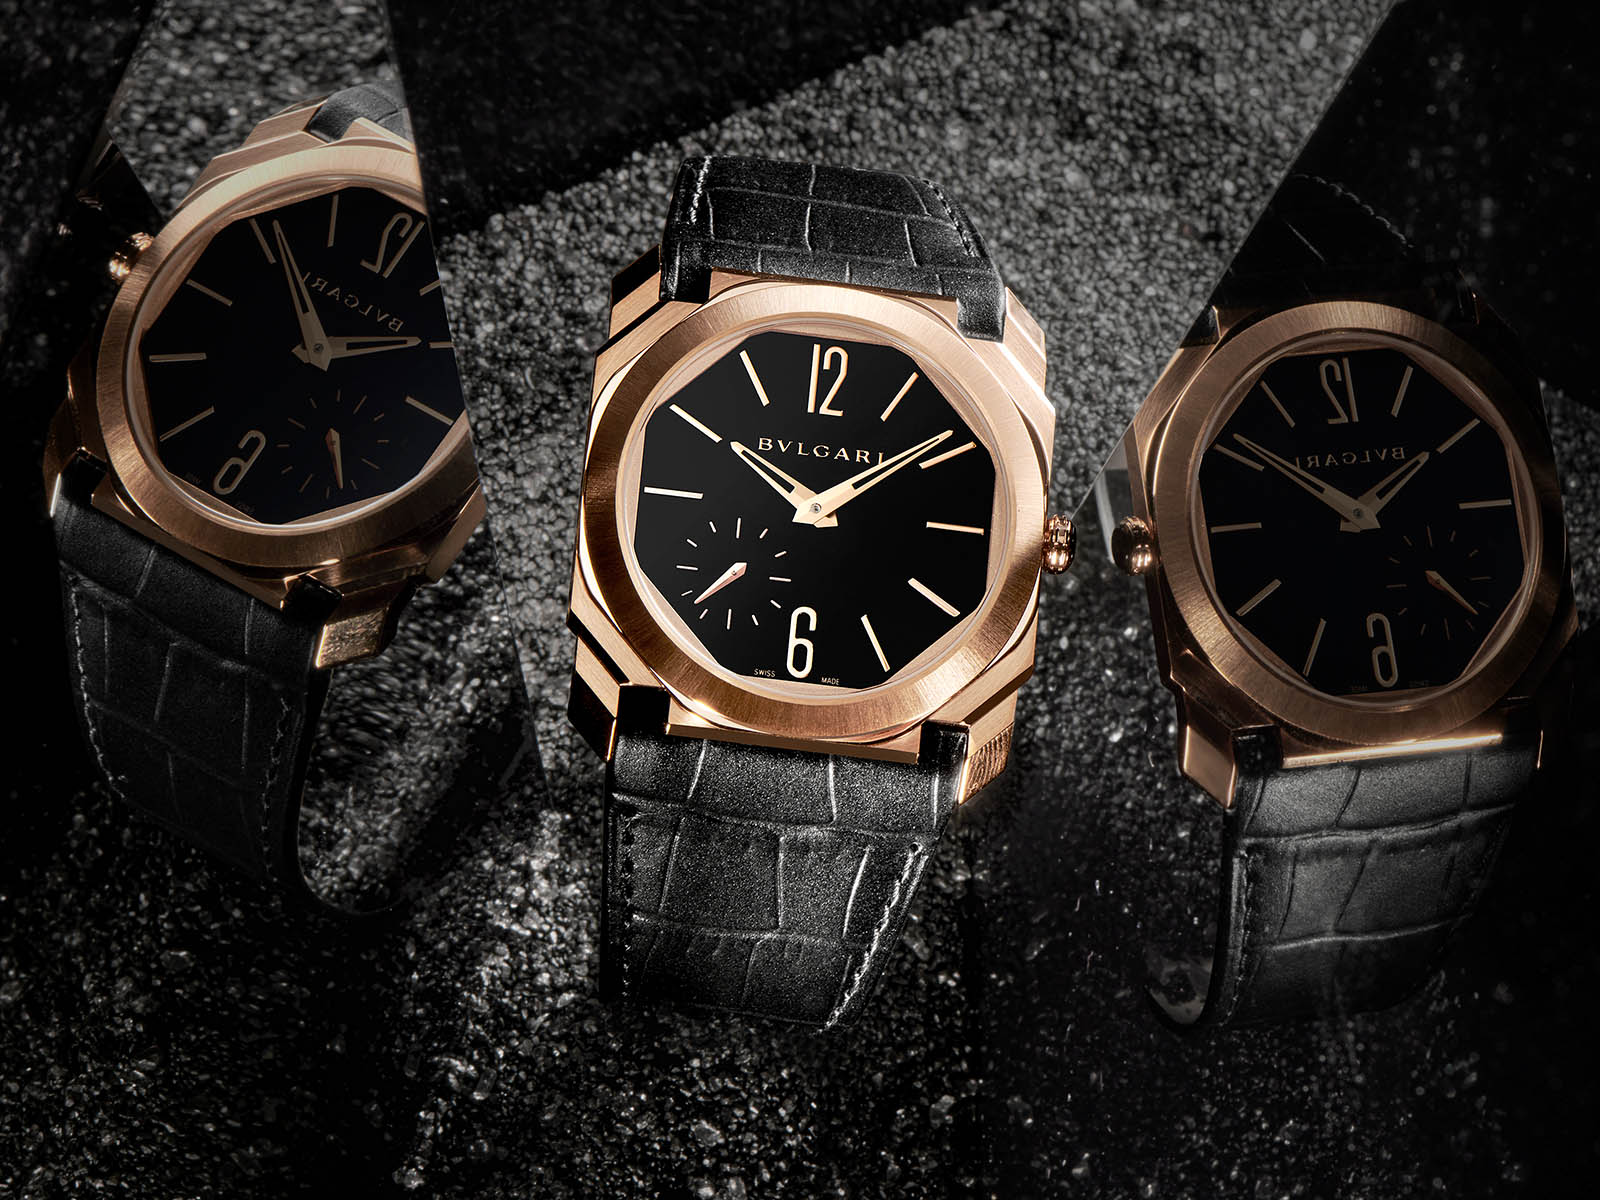 103286-bulgari-octo-finissimo-automatic-satin-polished-rose-gold.jpg